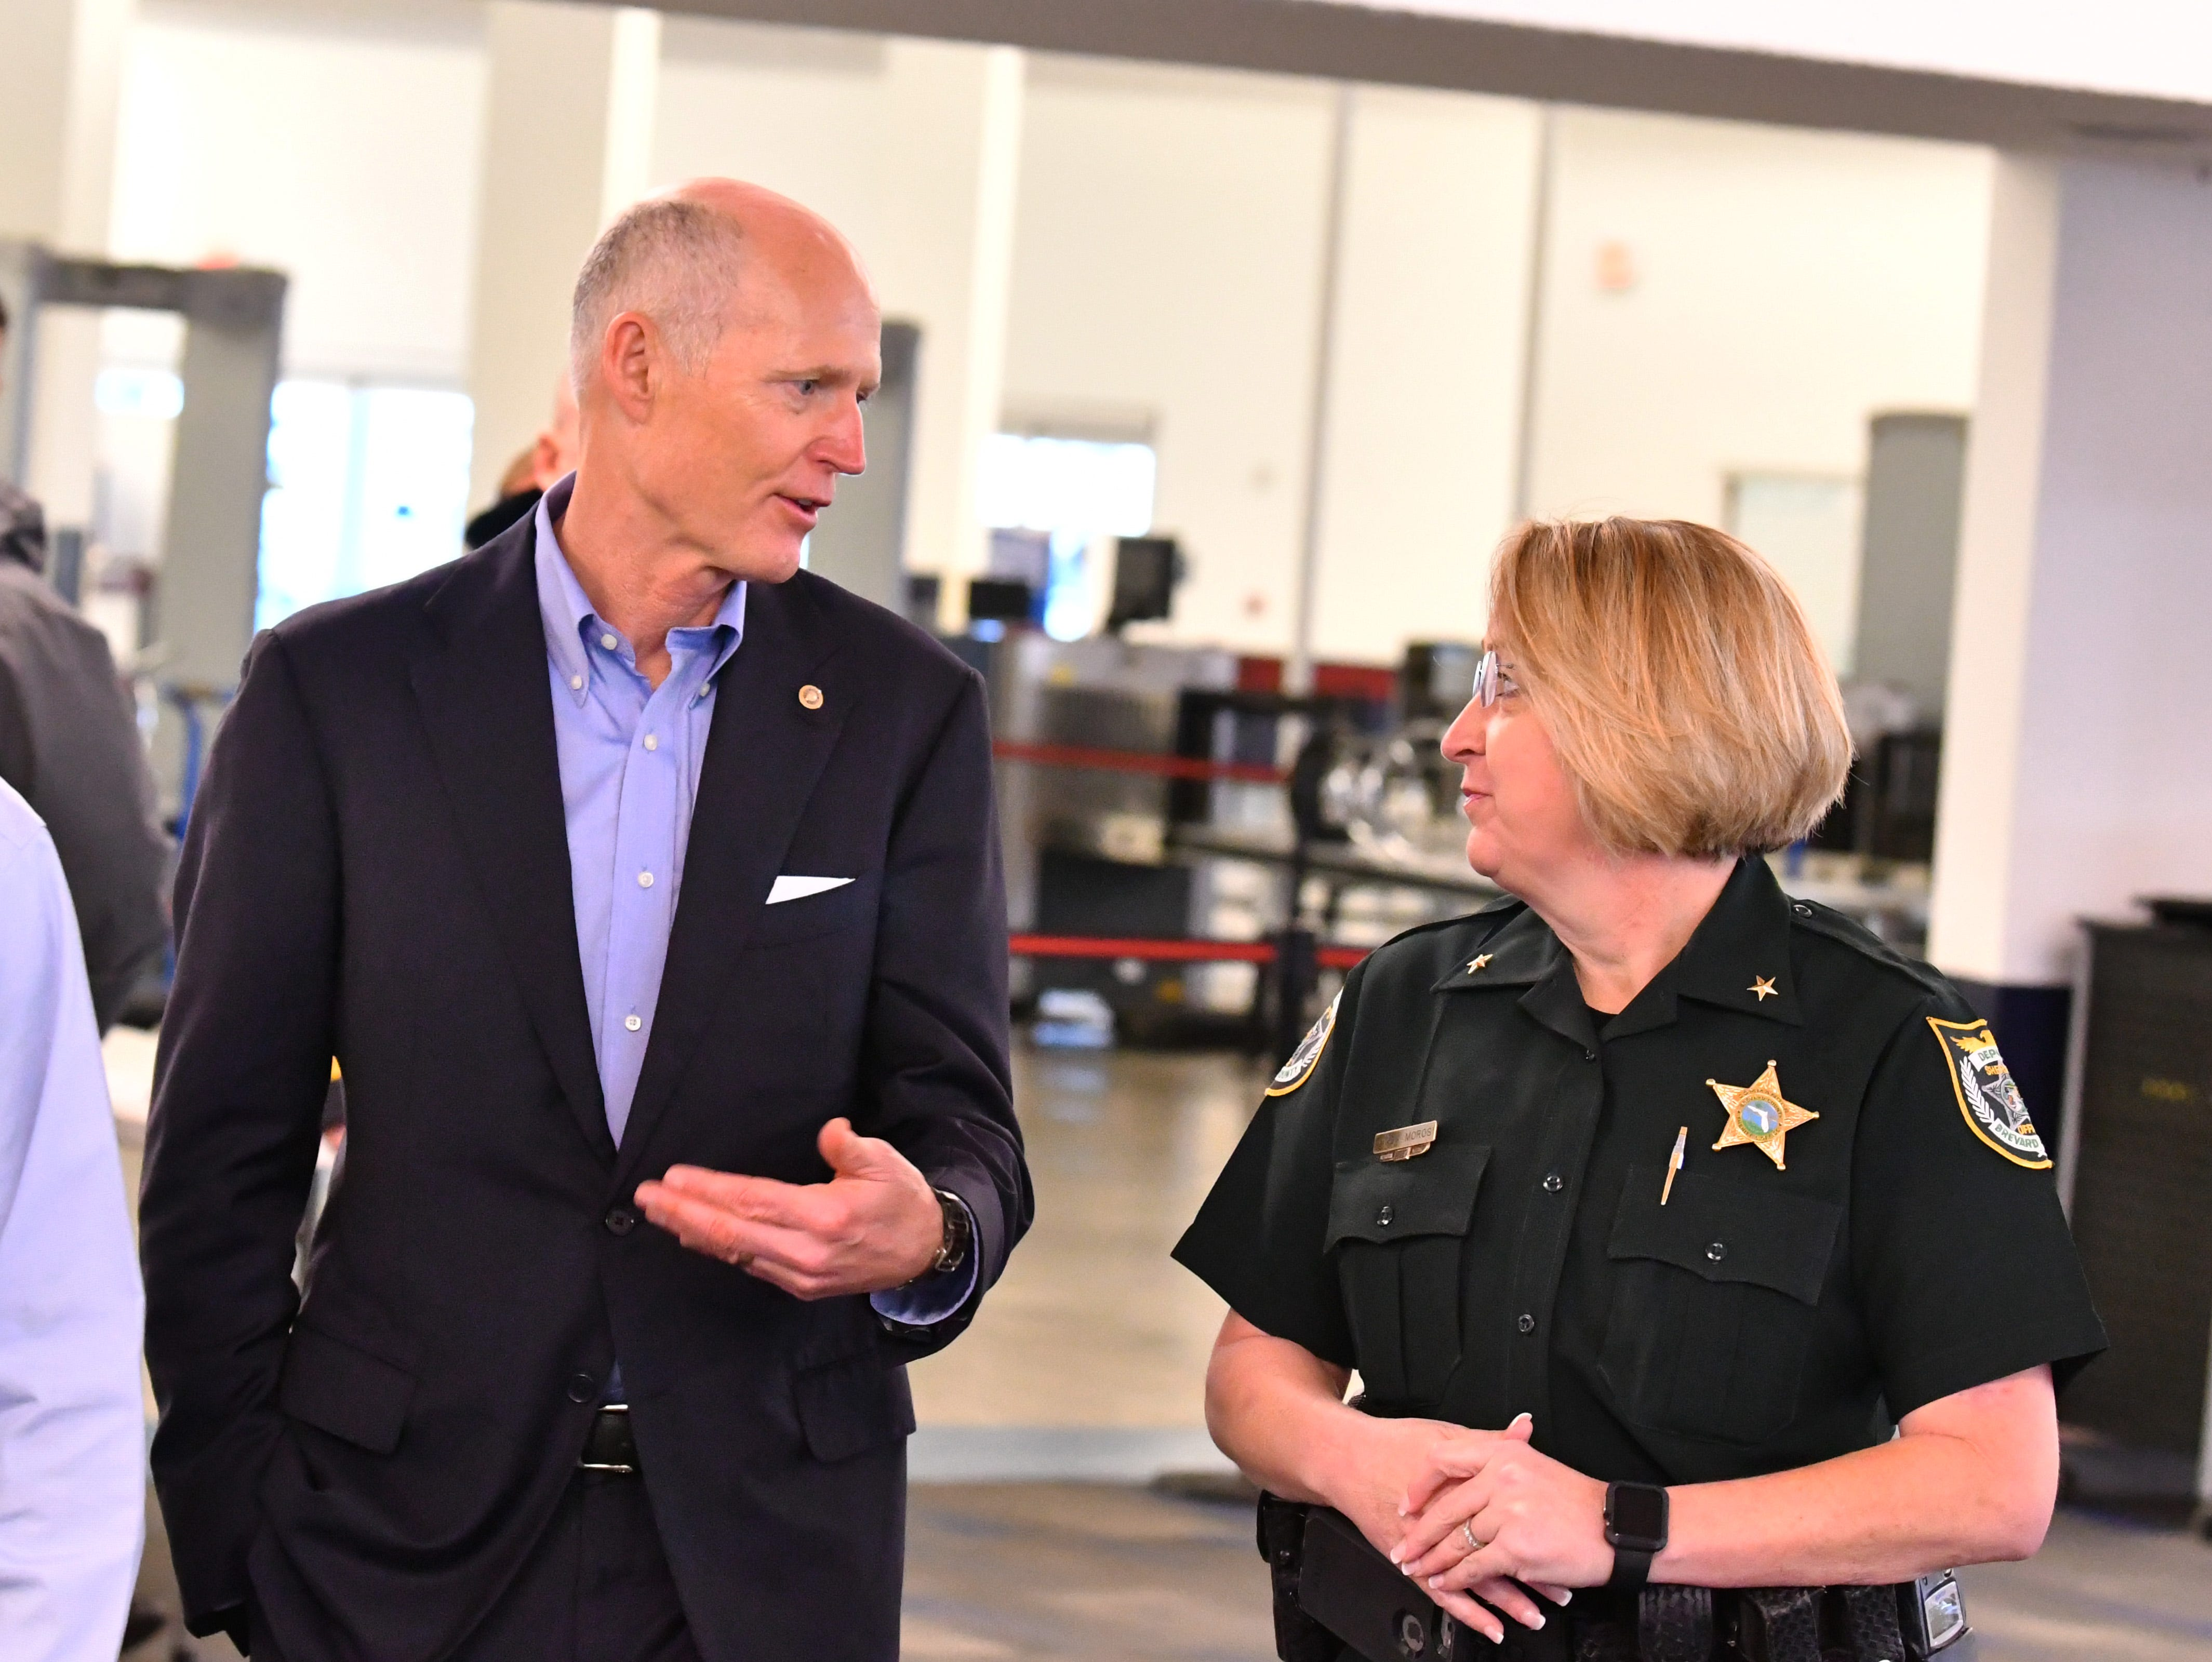 Sen. Rick Scott held a press conference at Terminal 5 Tuesday morning at Port Canaveral, pledging to work for $140 million in the budget for Florida ports. Sen. Scott chats with BCSO Commander Linda Moros on the way in.